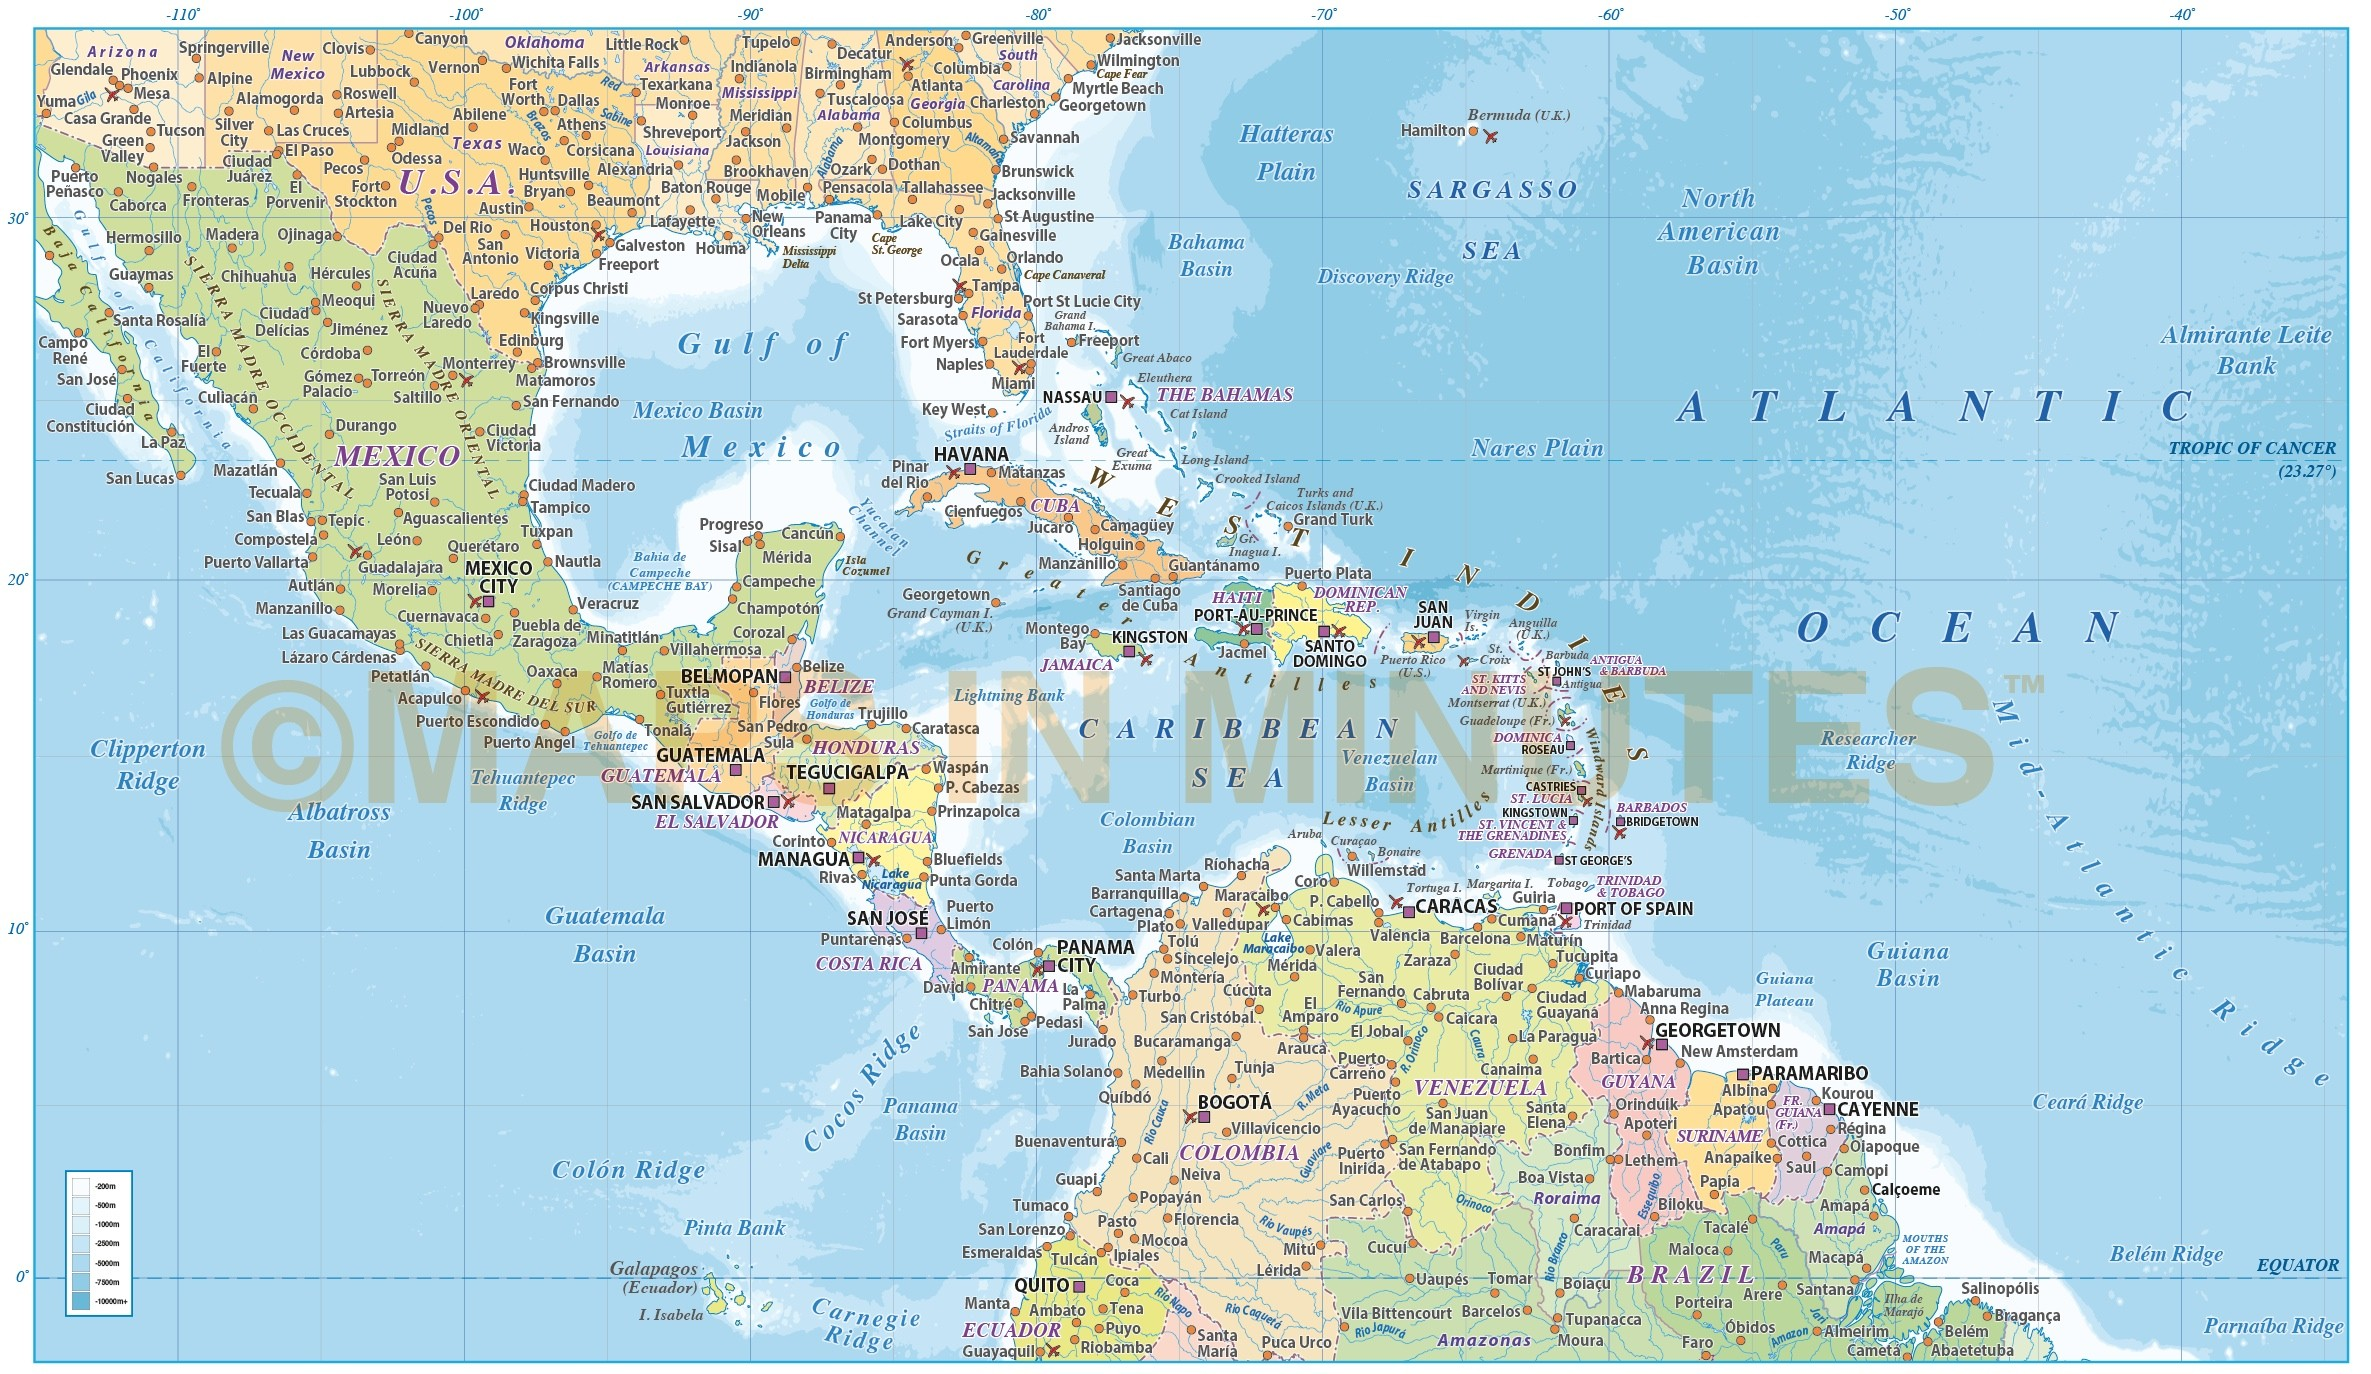 Central america vector map in illustrator and pdf format central america caribbean political map with ocean floor contours in illustrator cs and pdf formats gumiabroncs Images